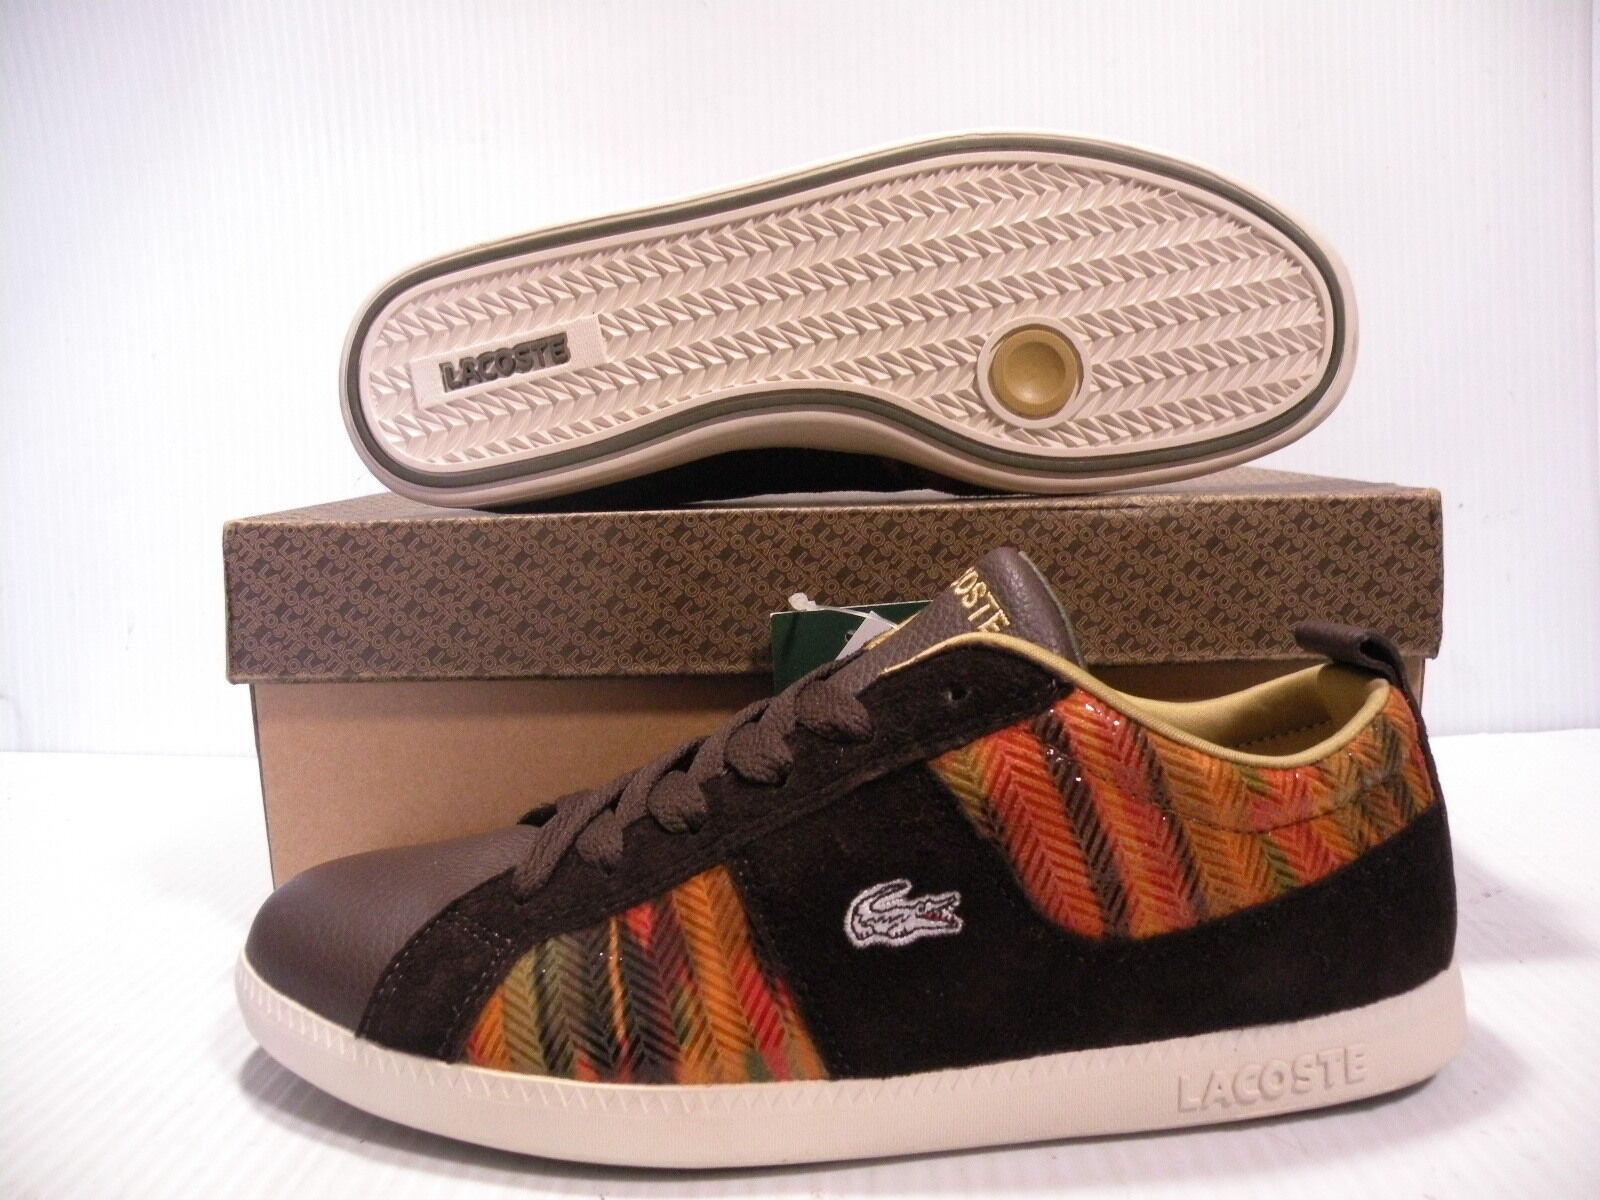 LACOSTE ABSERVE ELEMENTS LOW LEATHER WOMEN SHOES BROWN 4STW7991-L56 SIZE 8 NEW